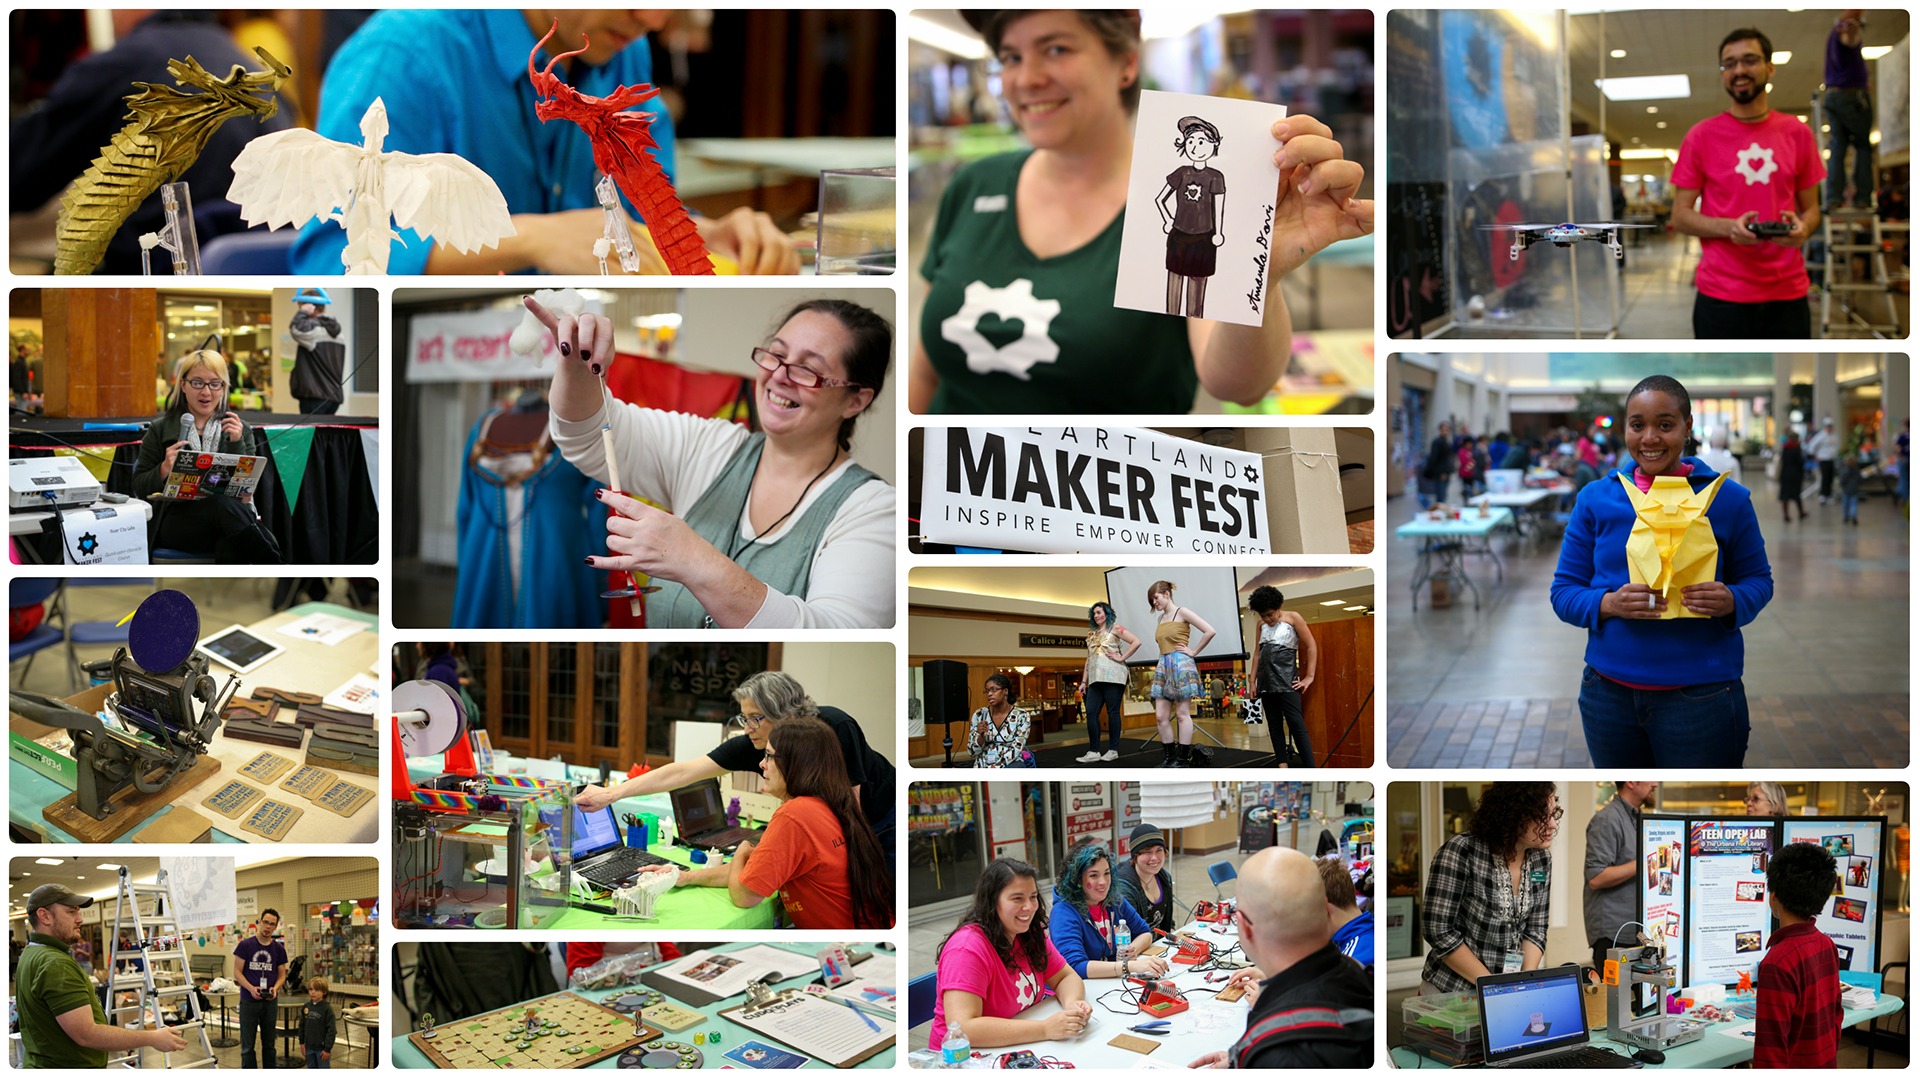 PhotoGrid2015_2_Makerfest1920